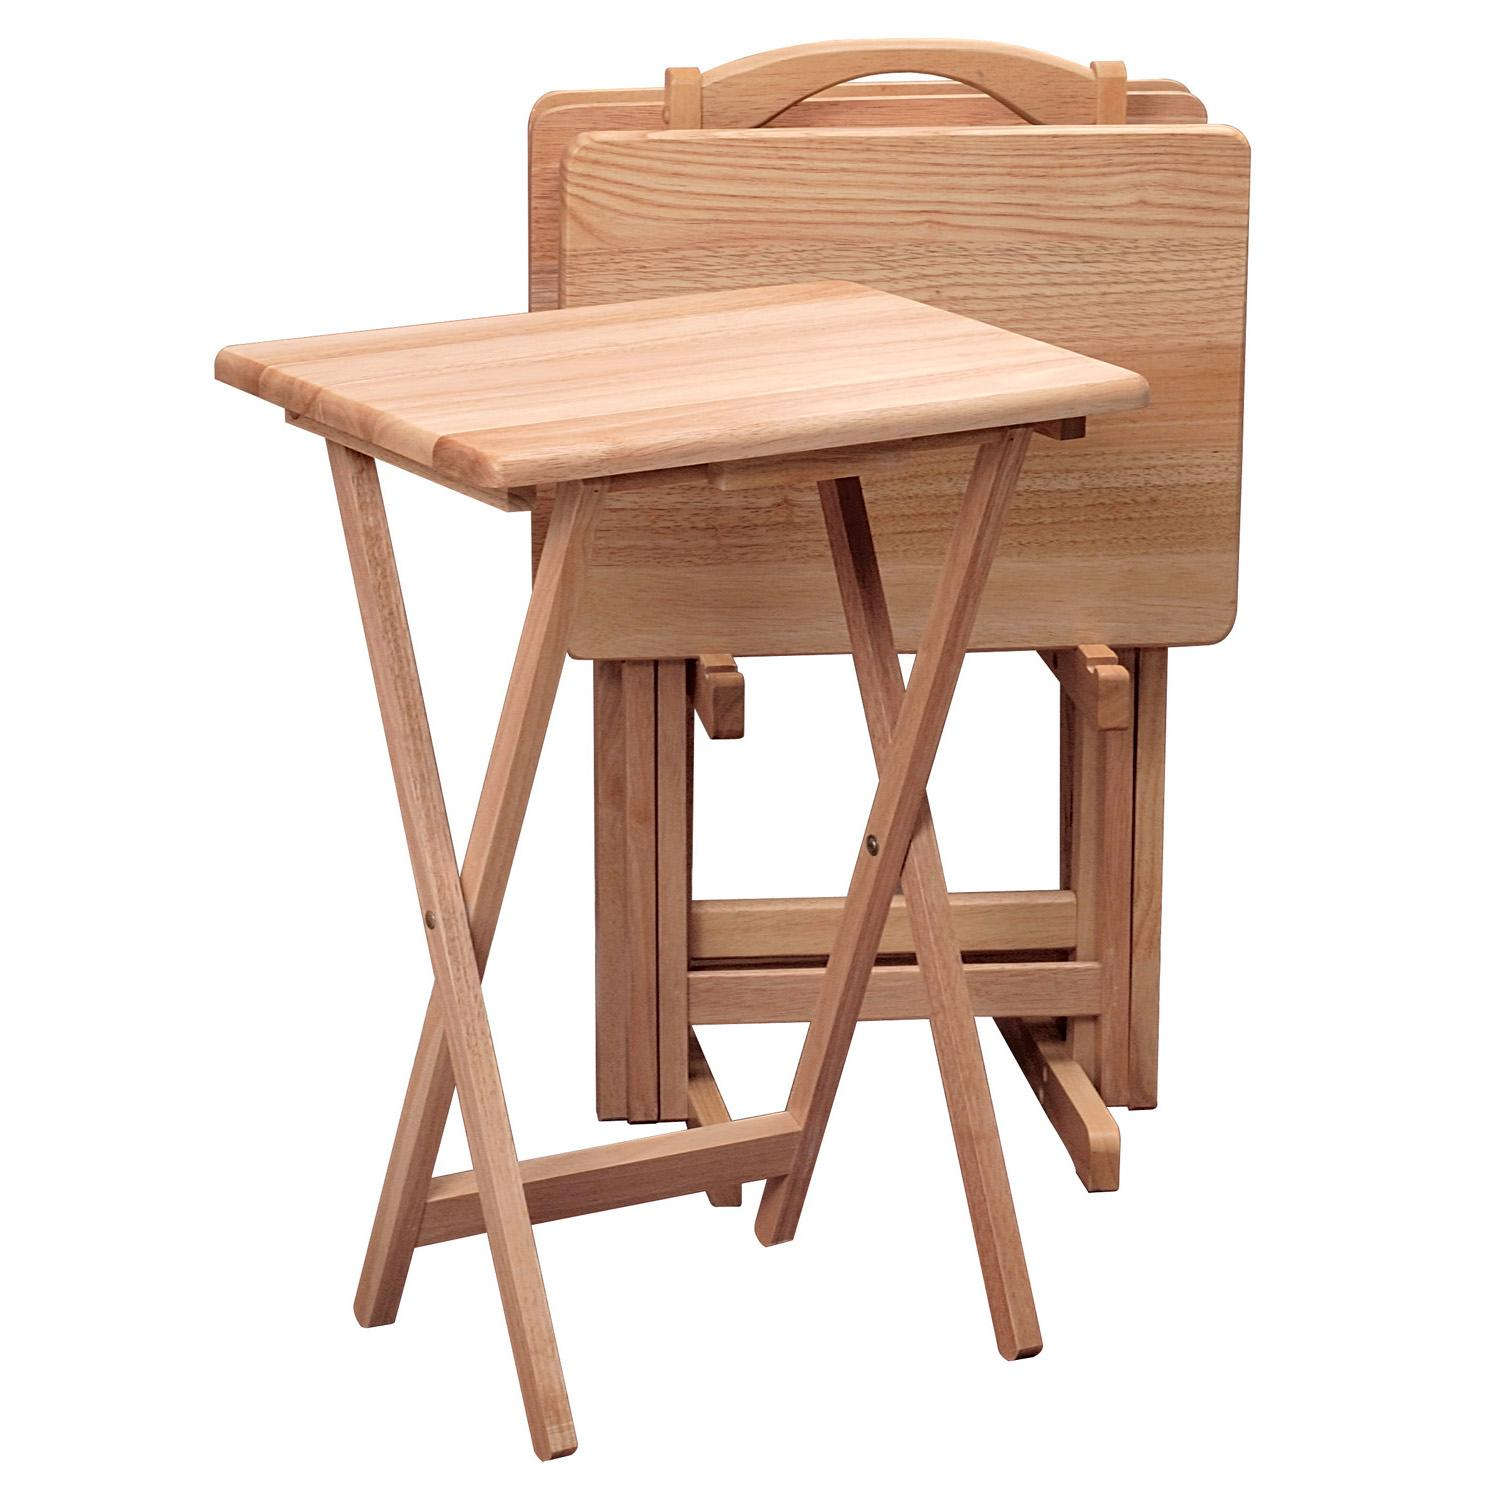 Table With Tv : Winsome wood piece tv table set natural amazon